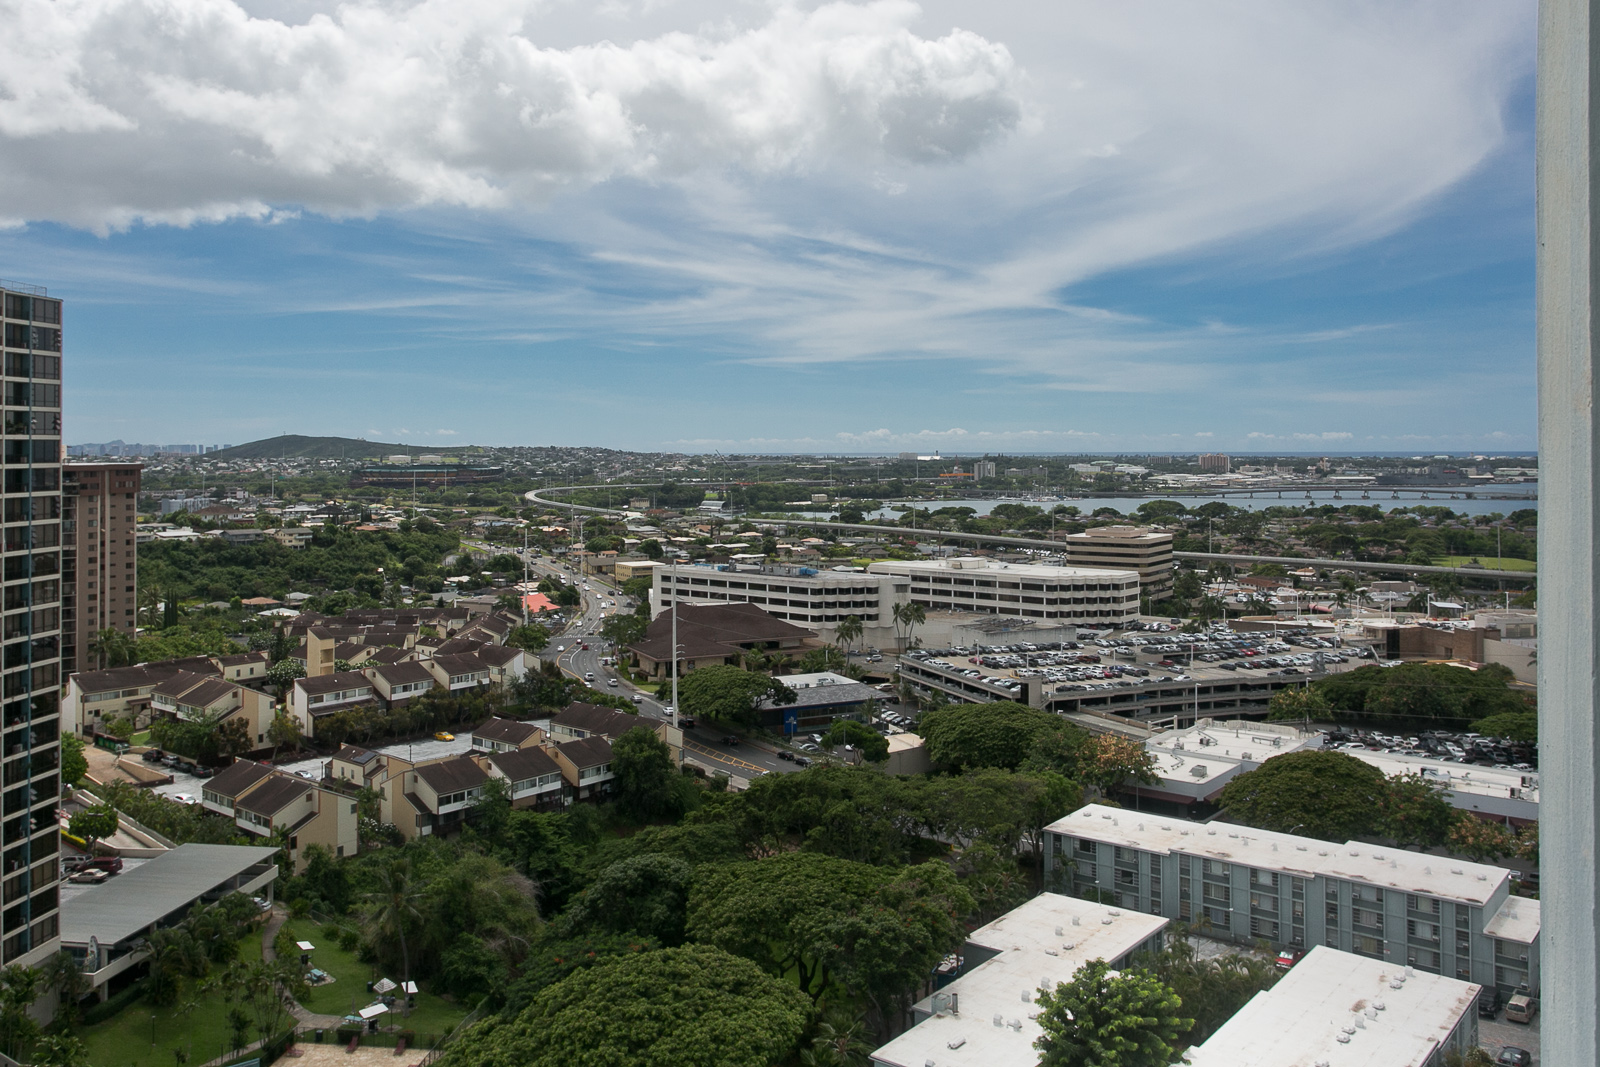 New Listing For Sale Residential Condo In Aiea Pearl